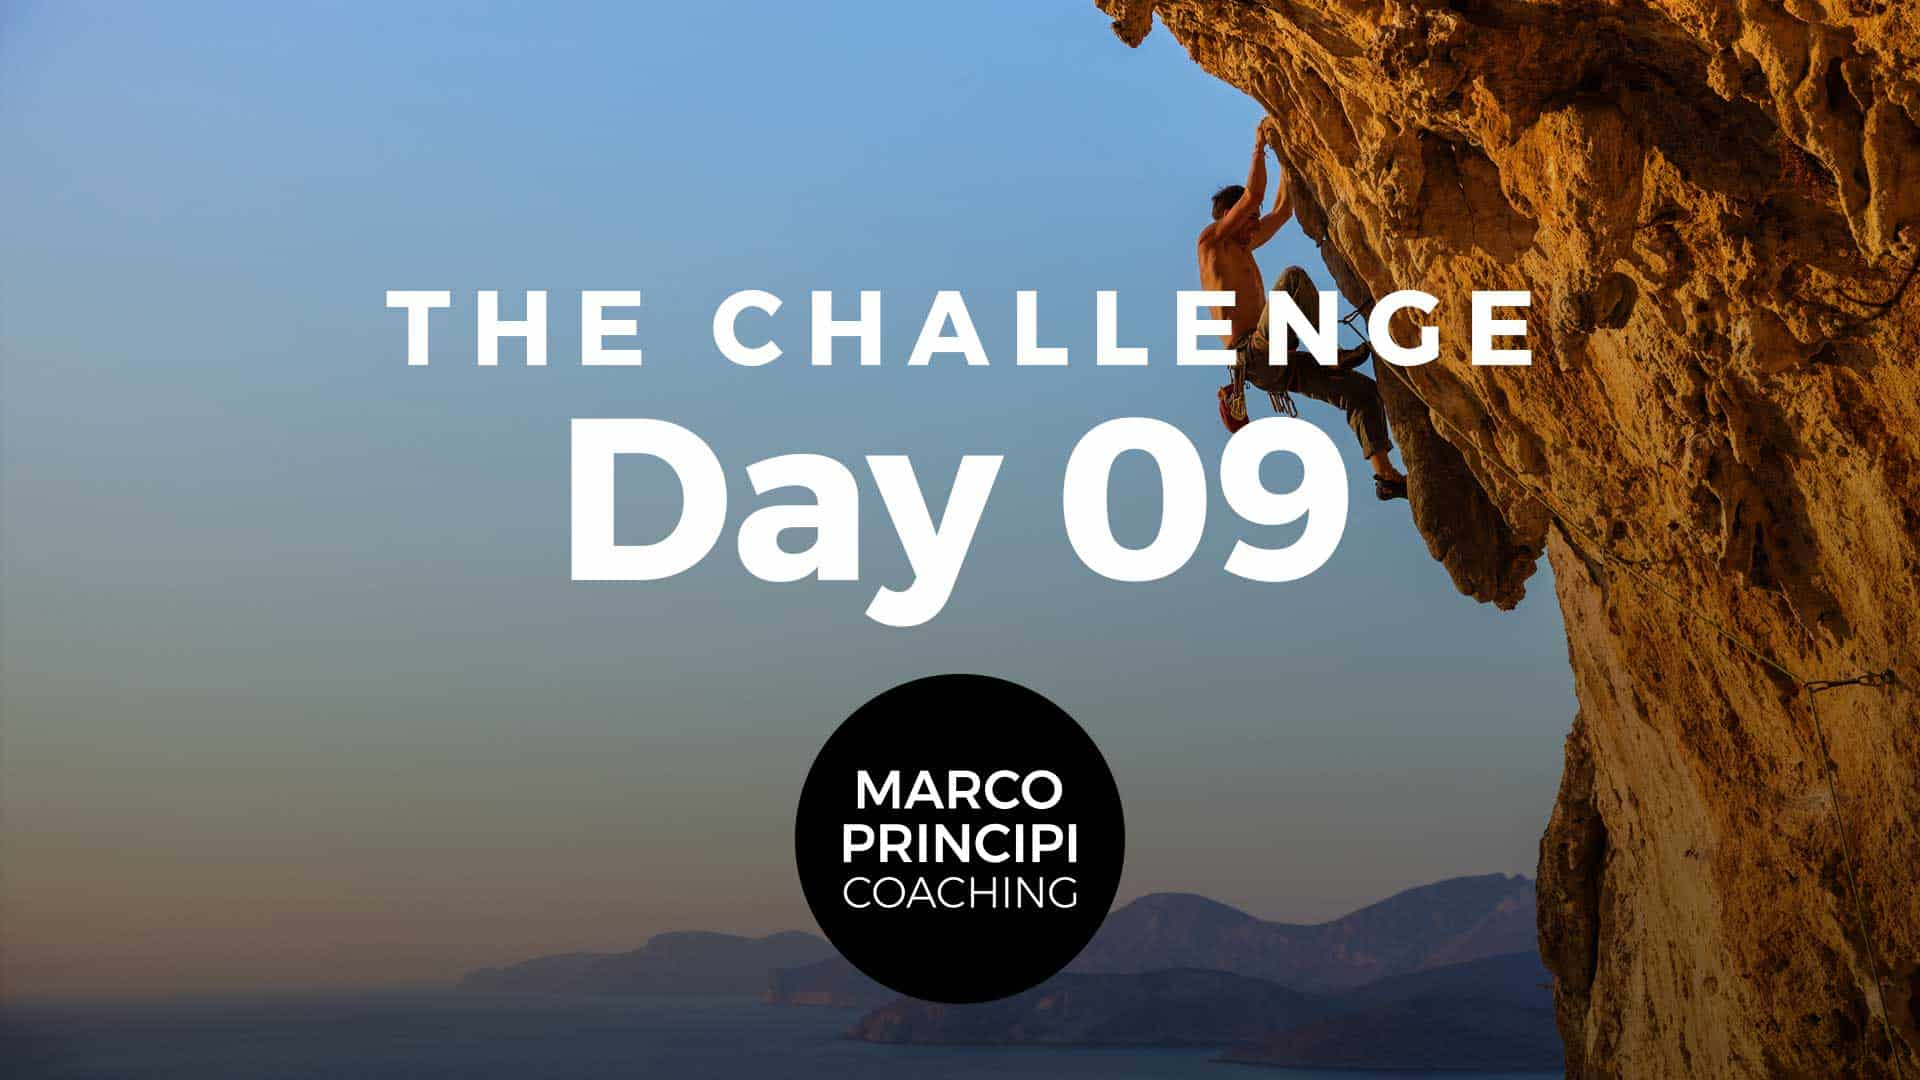 Marco Principi YT Cover The Challenge Day 009